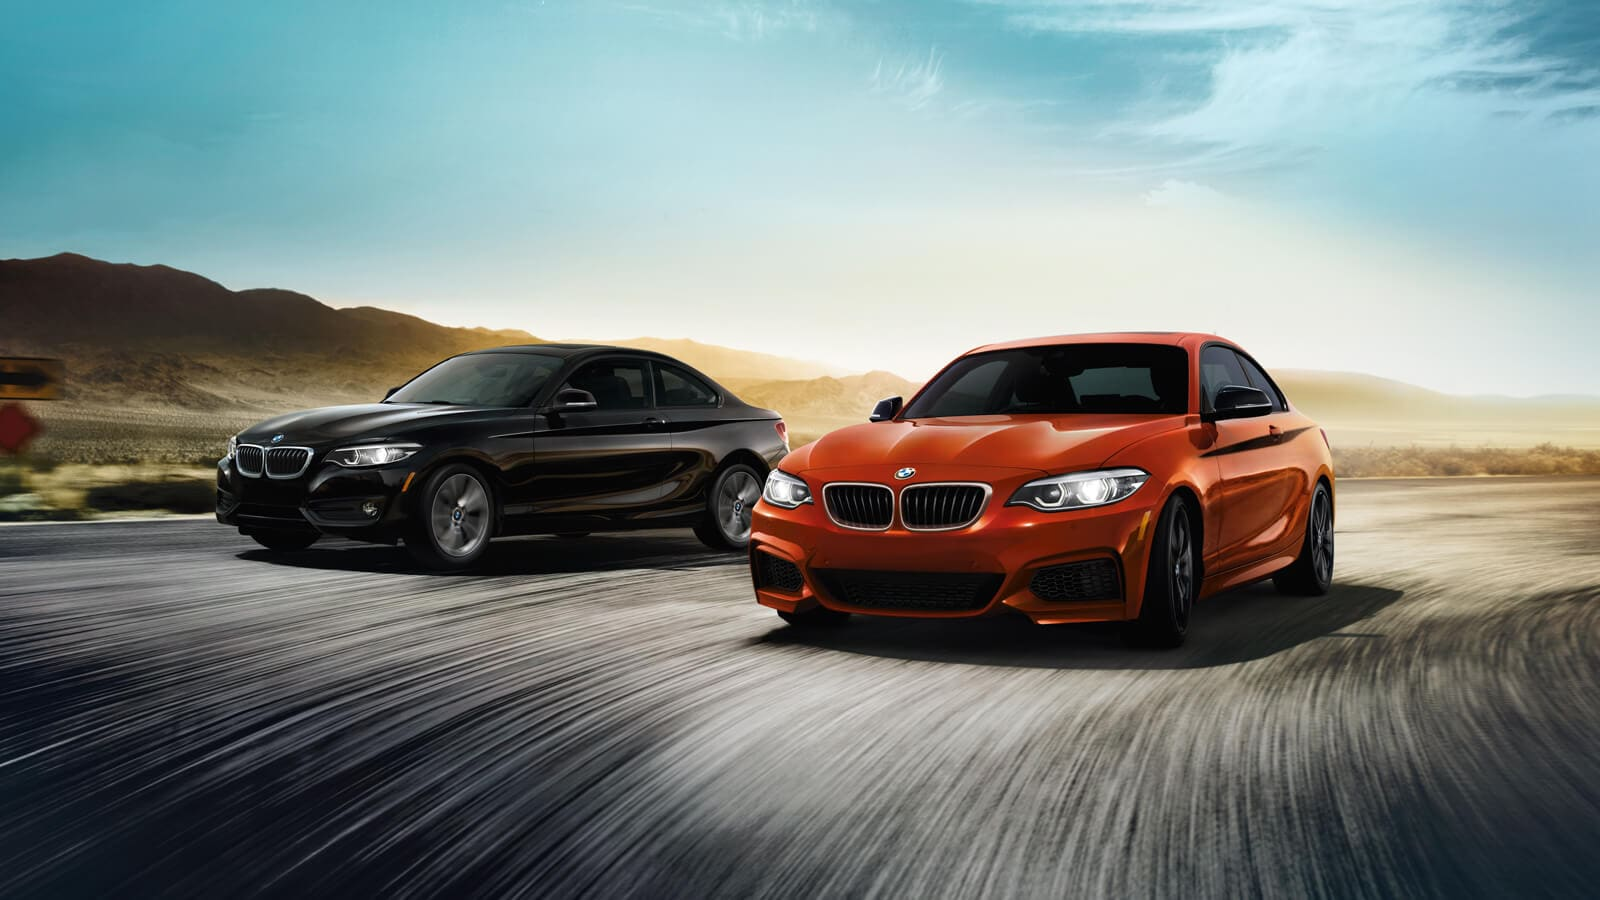 2020 BMW 2 Series 230i Front View Exterior Black and Orange Lineup Picture